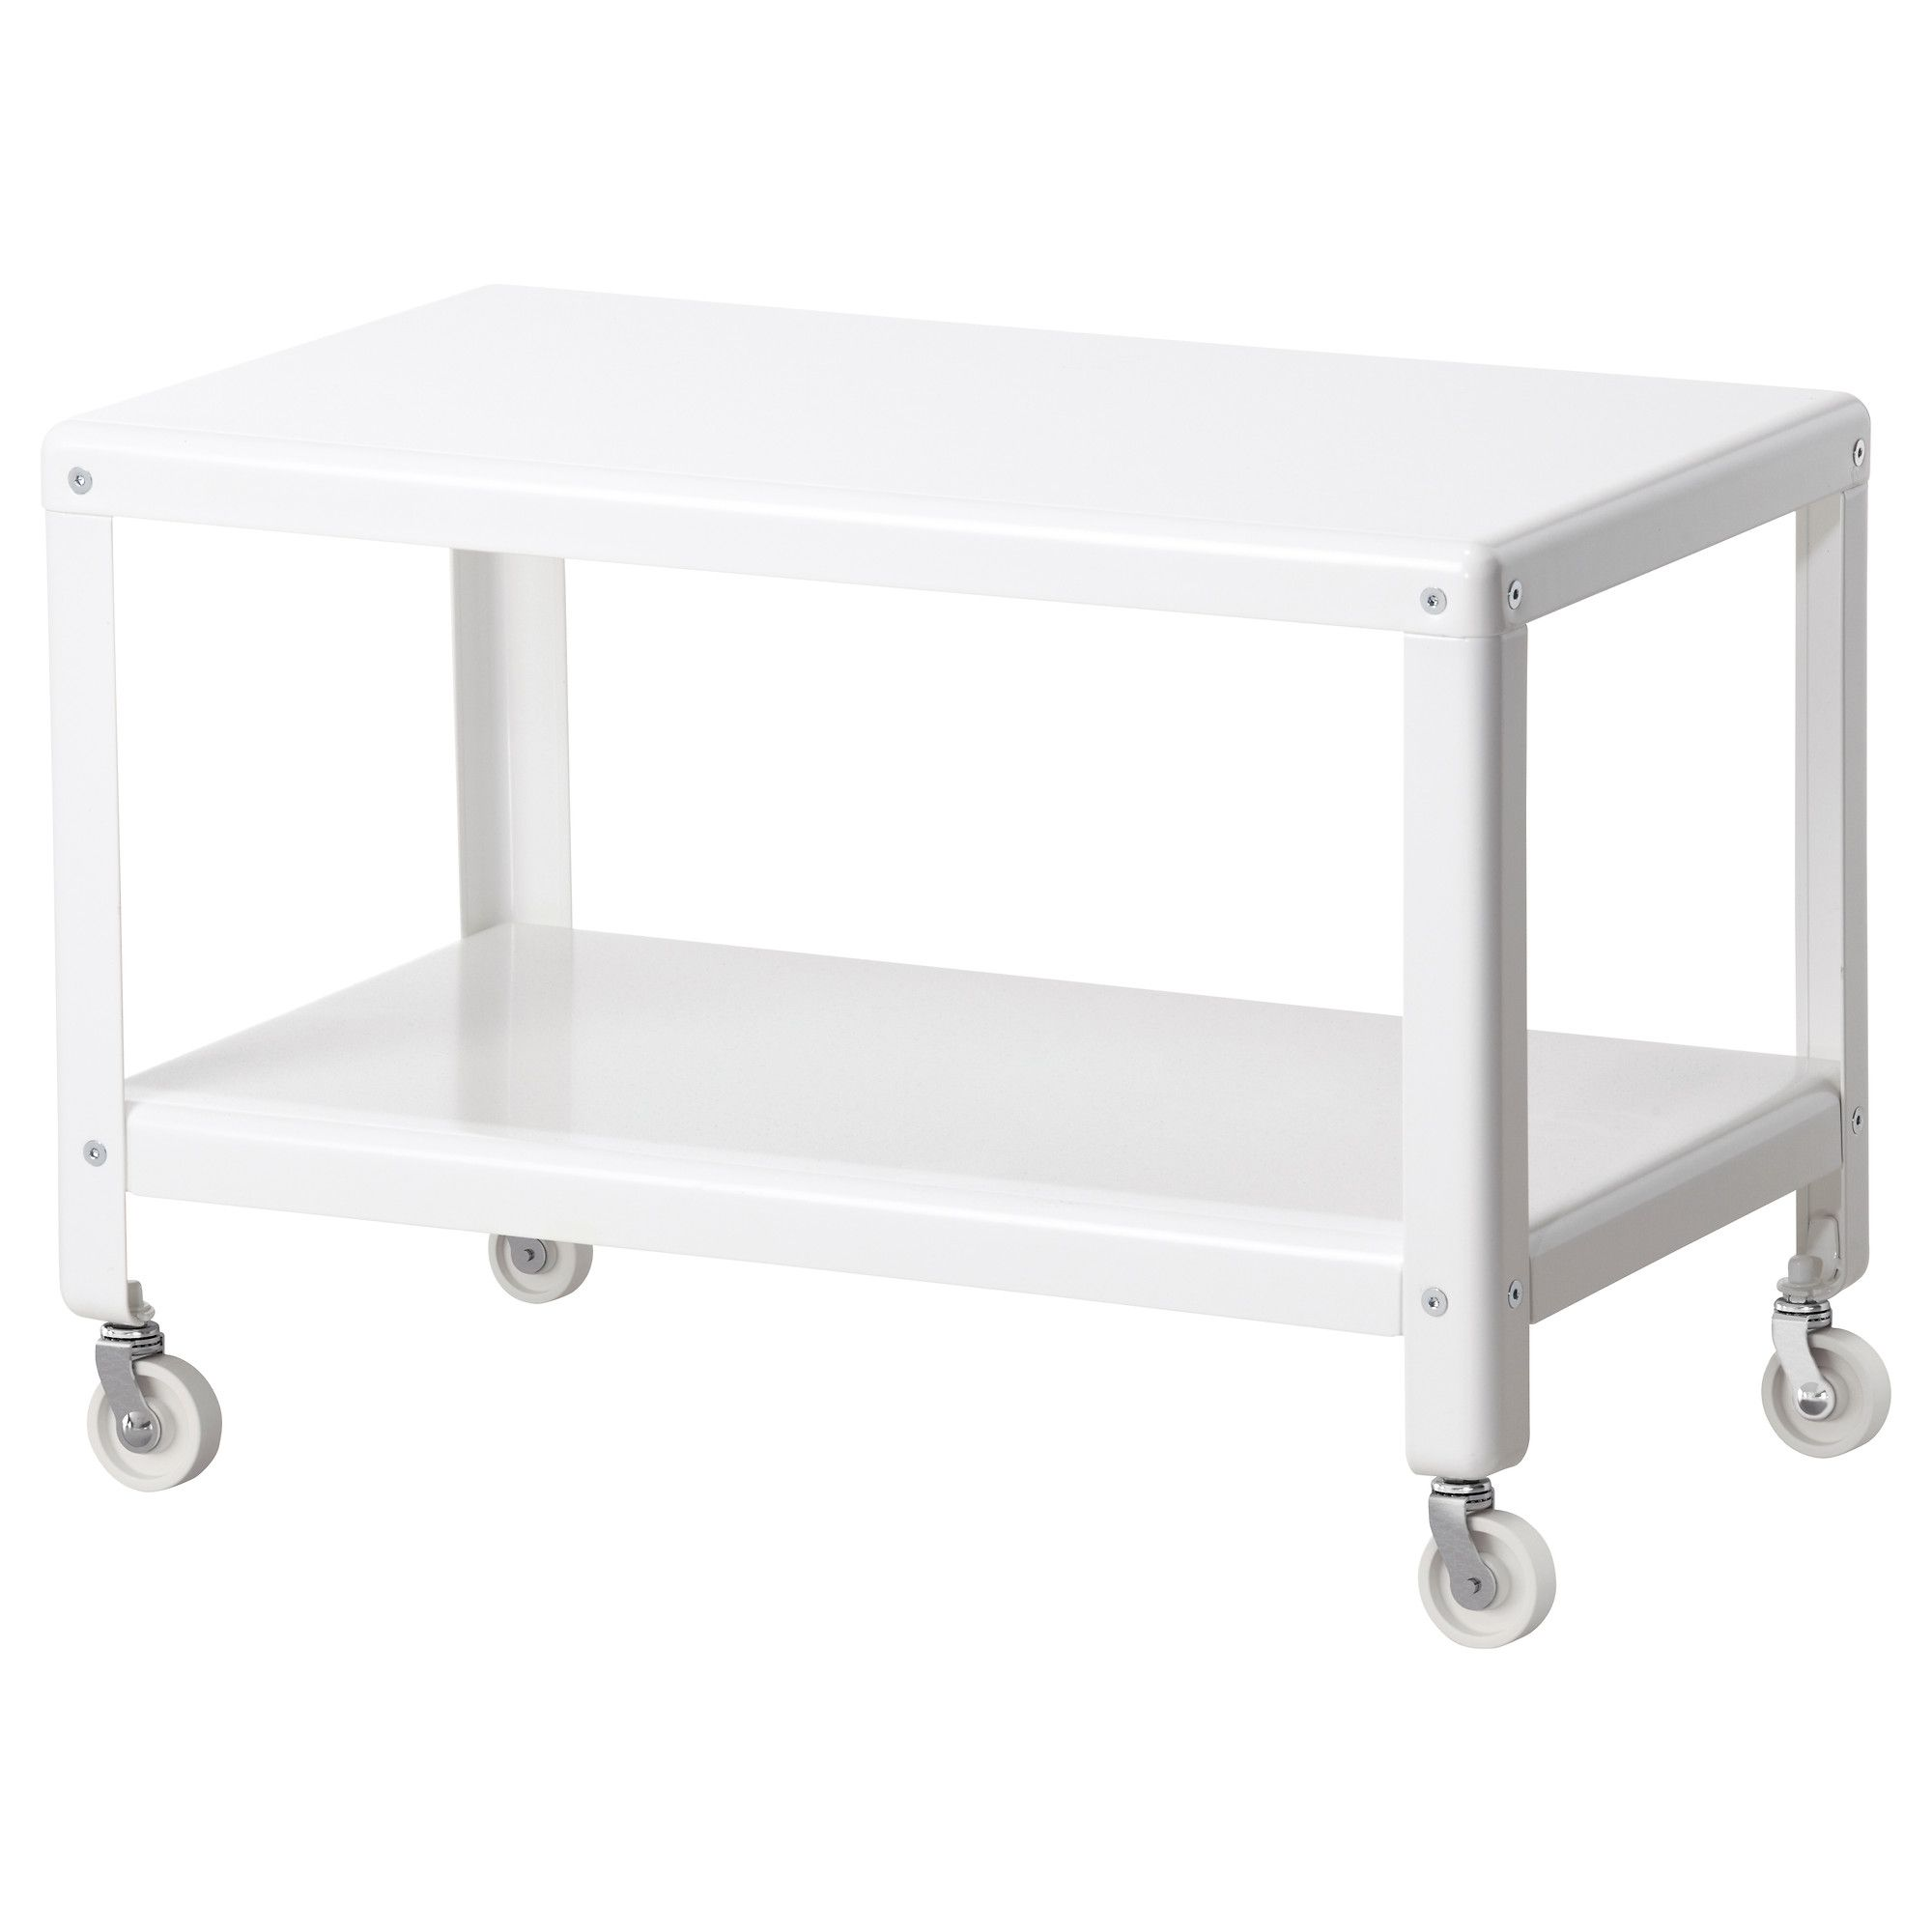 Ikea Ps Couchtisch Ikea Ps 2012 Coffee Table White 49 99 The Price Reflects